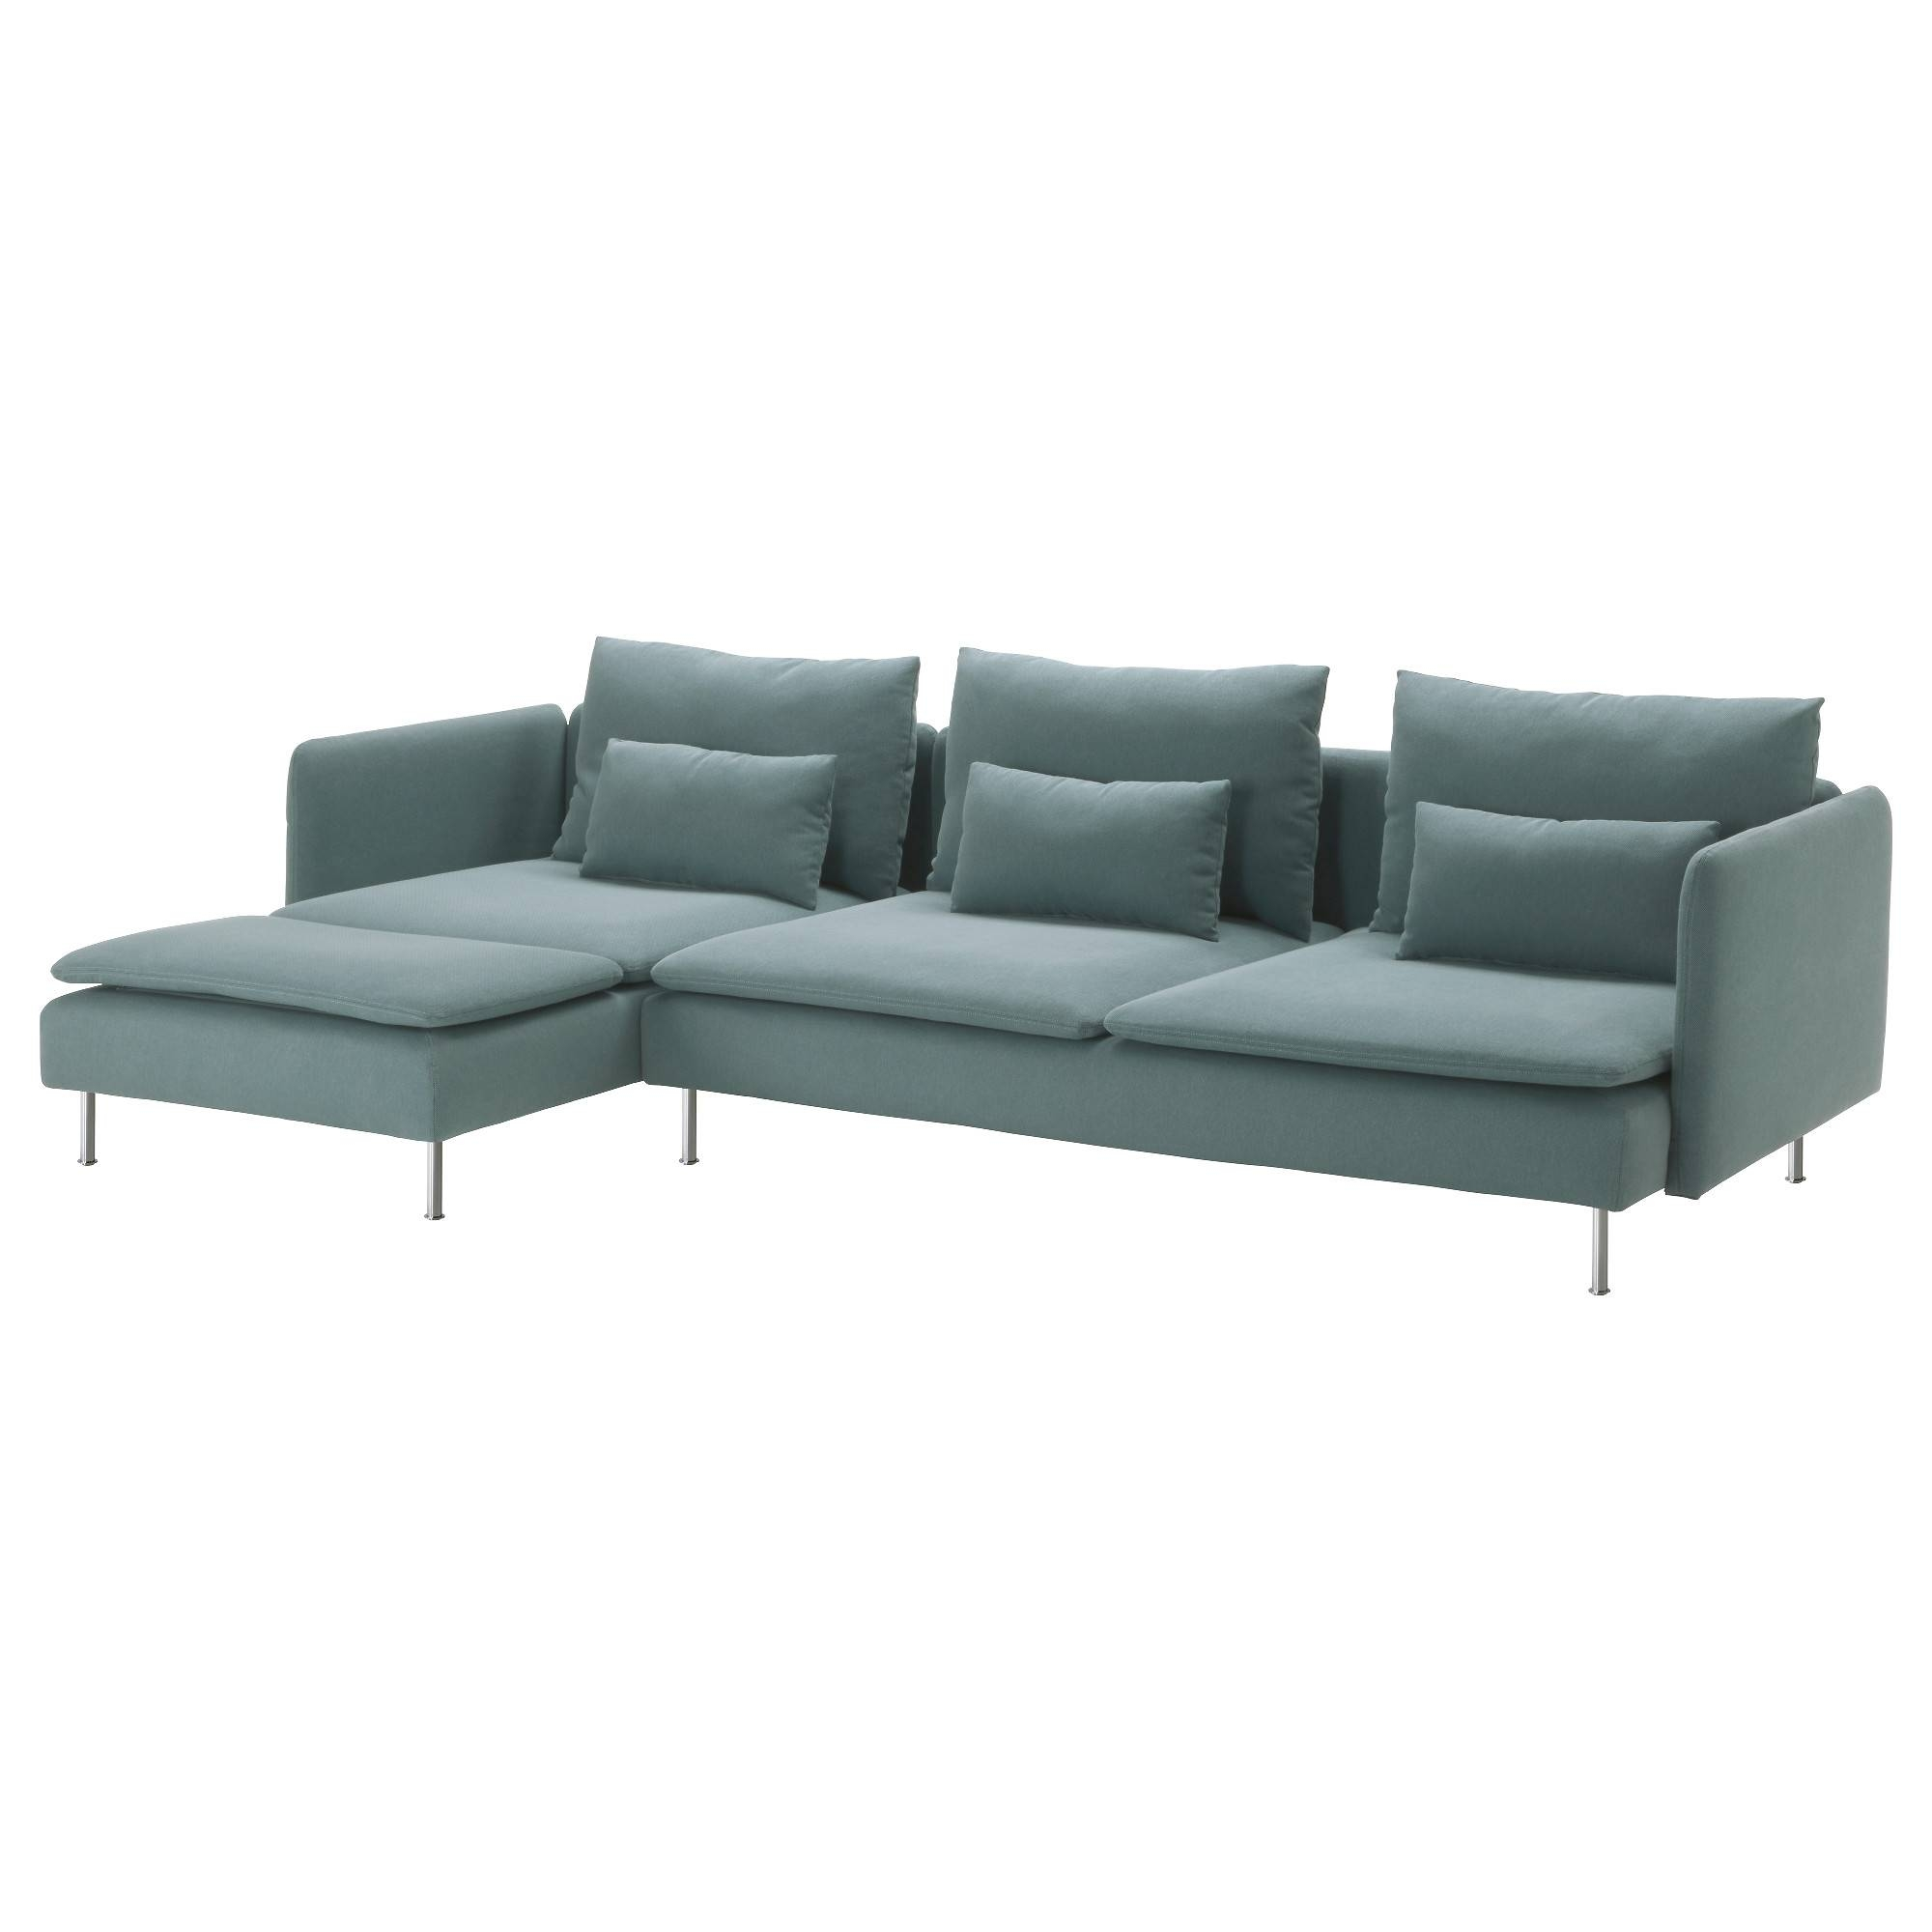 Sectional Sofas & Couches - Ikea within 45 Degree Sectional Sofa (Image 23 of 30)